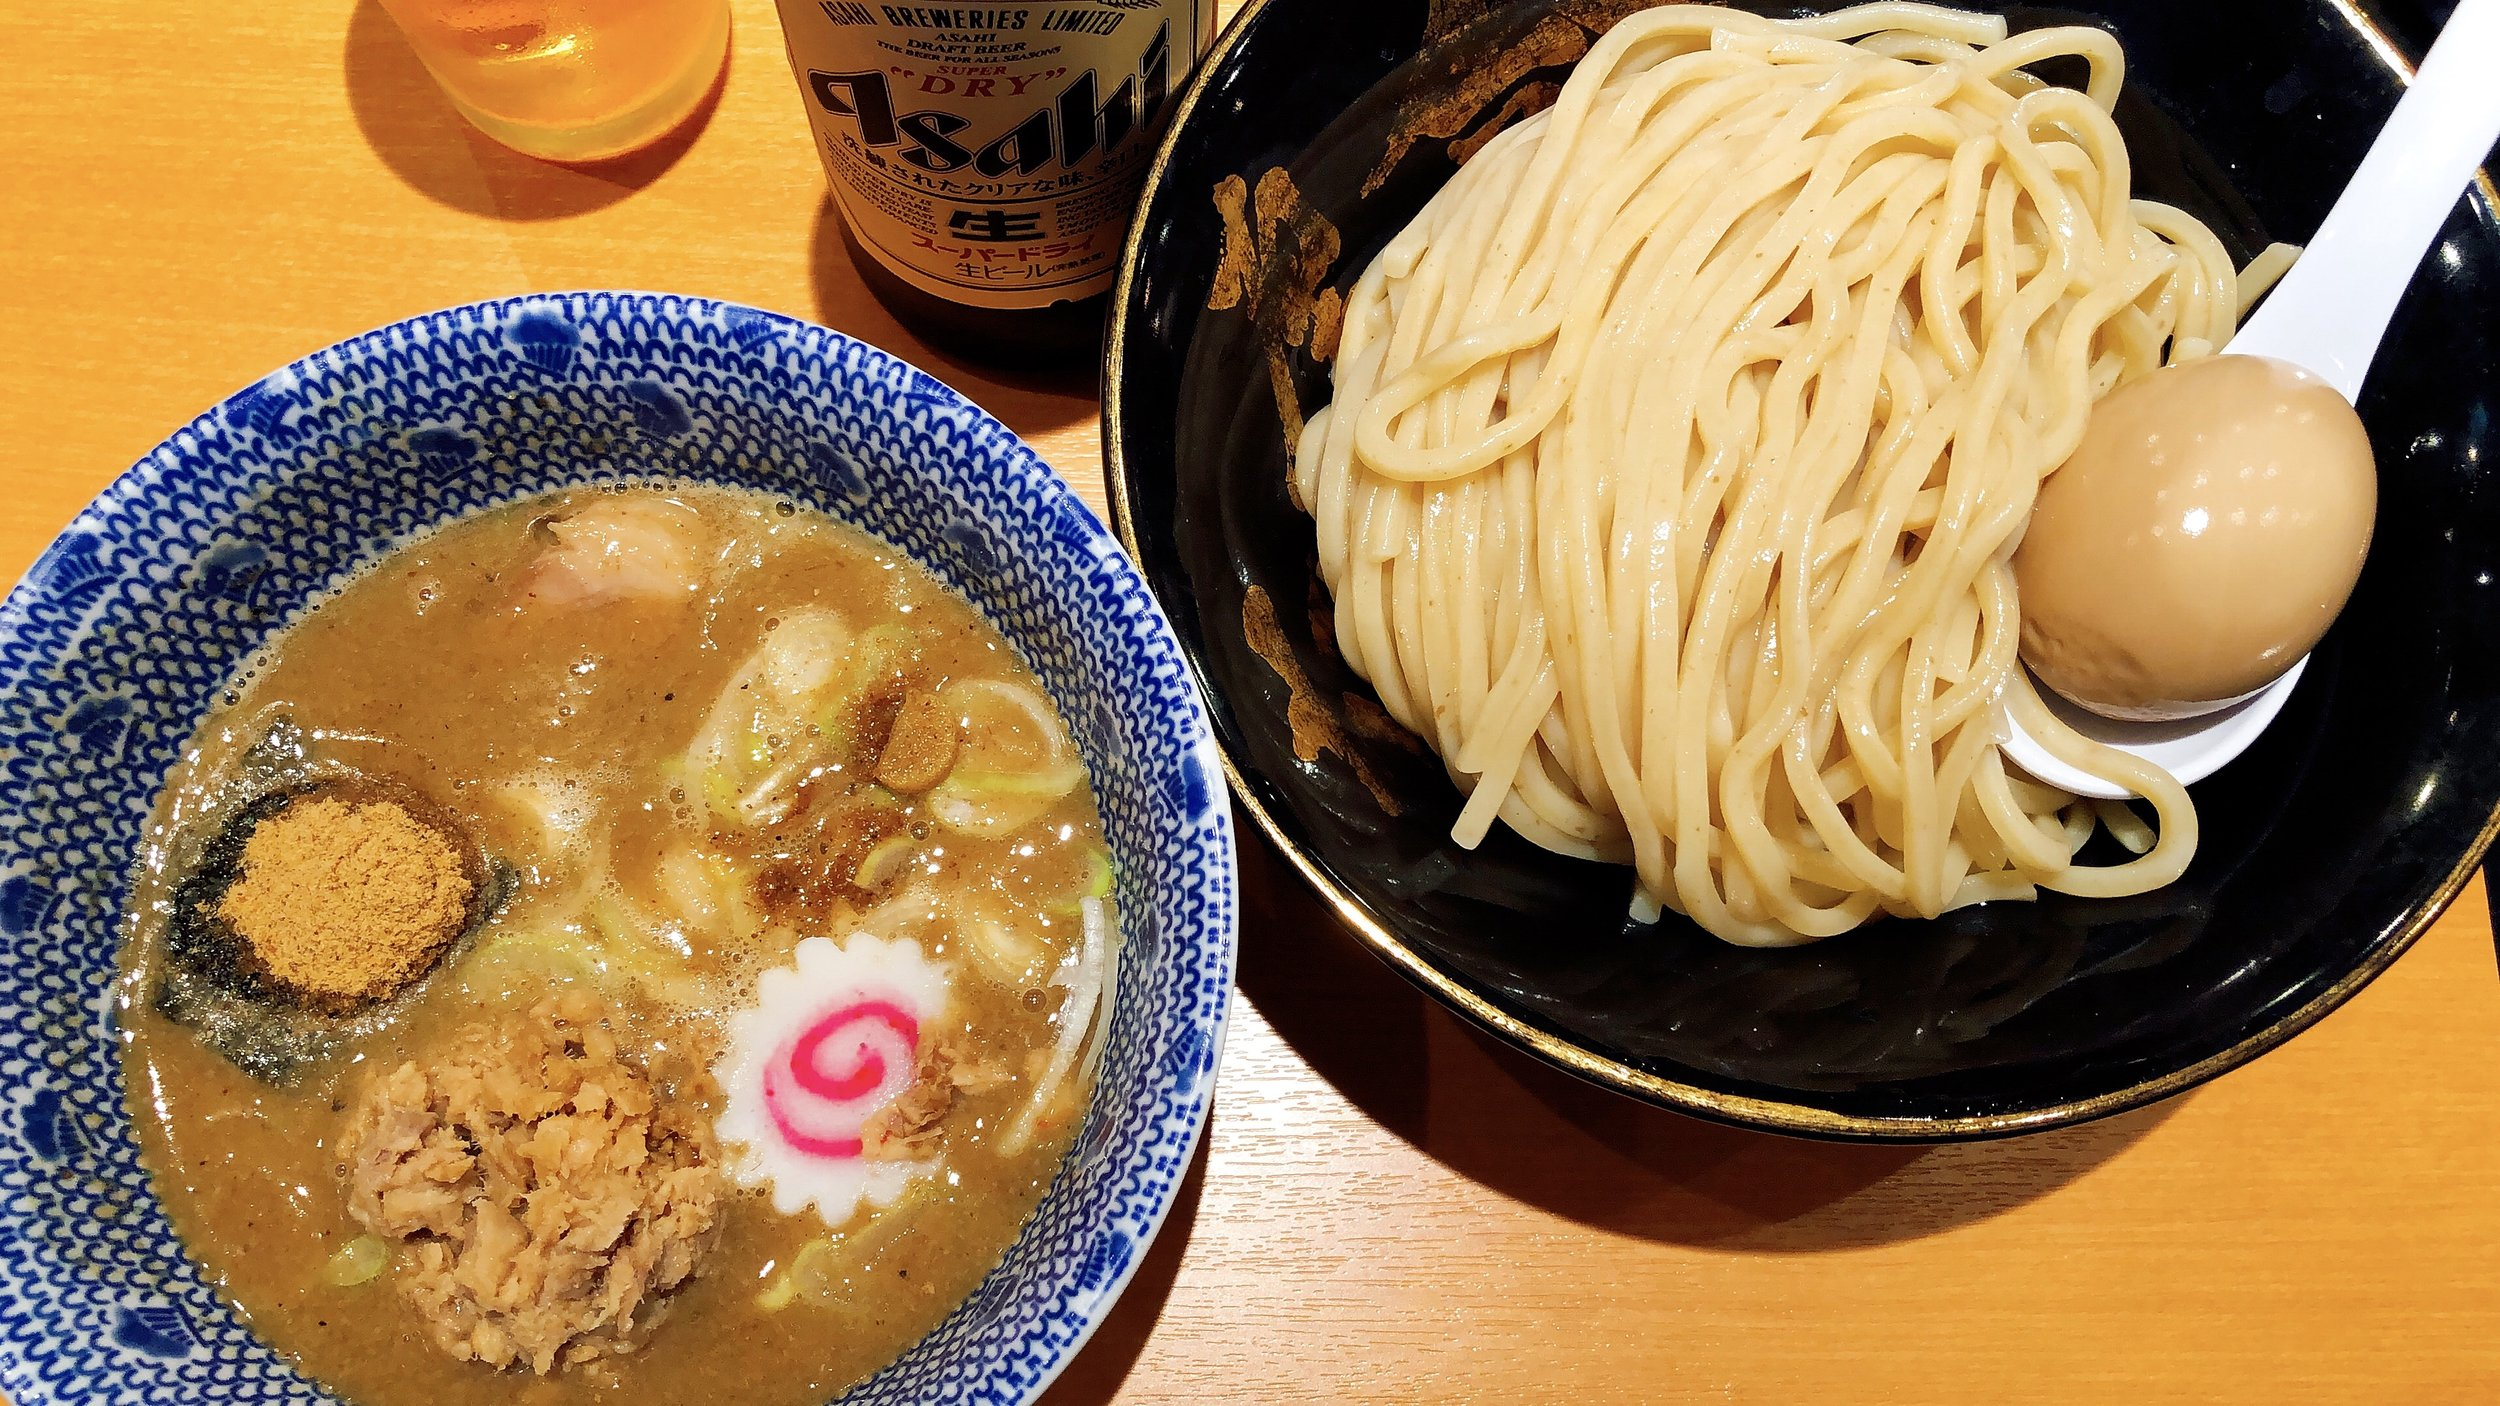 Featured Above: Tsukeme With A Traditional Asahi Beer